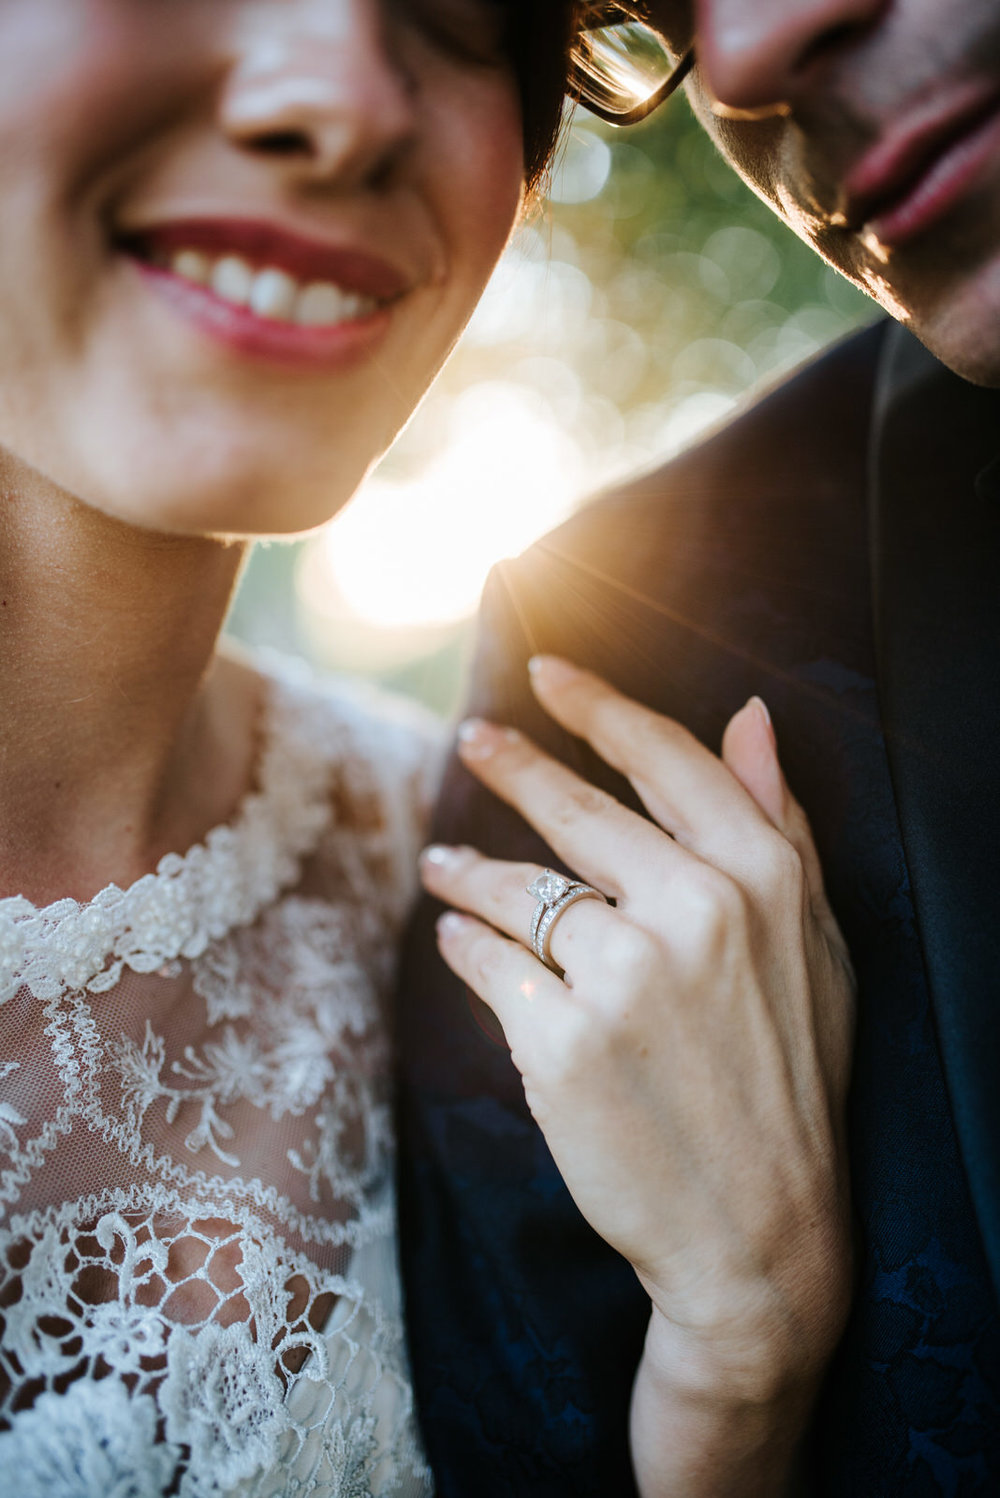 Bride shows off diamond ring as sun sets behind them during wedd